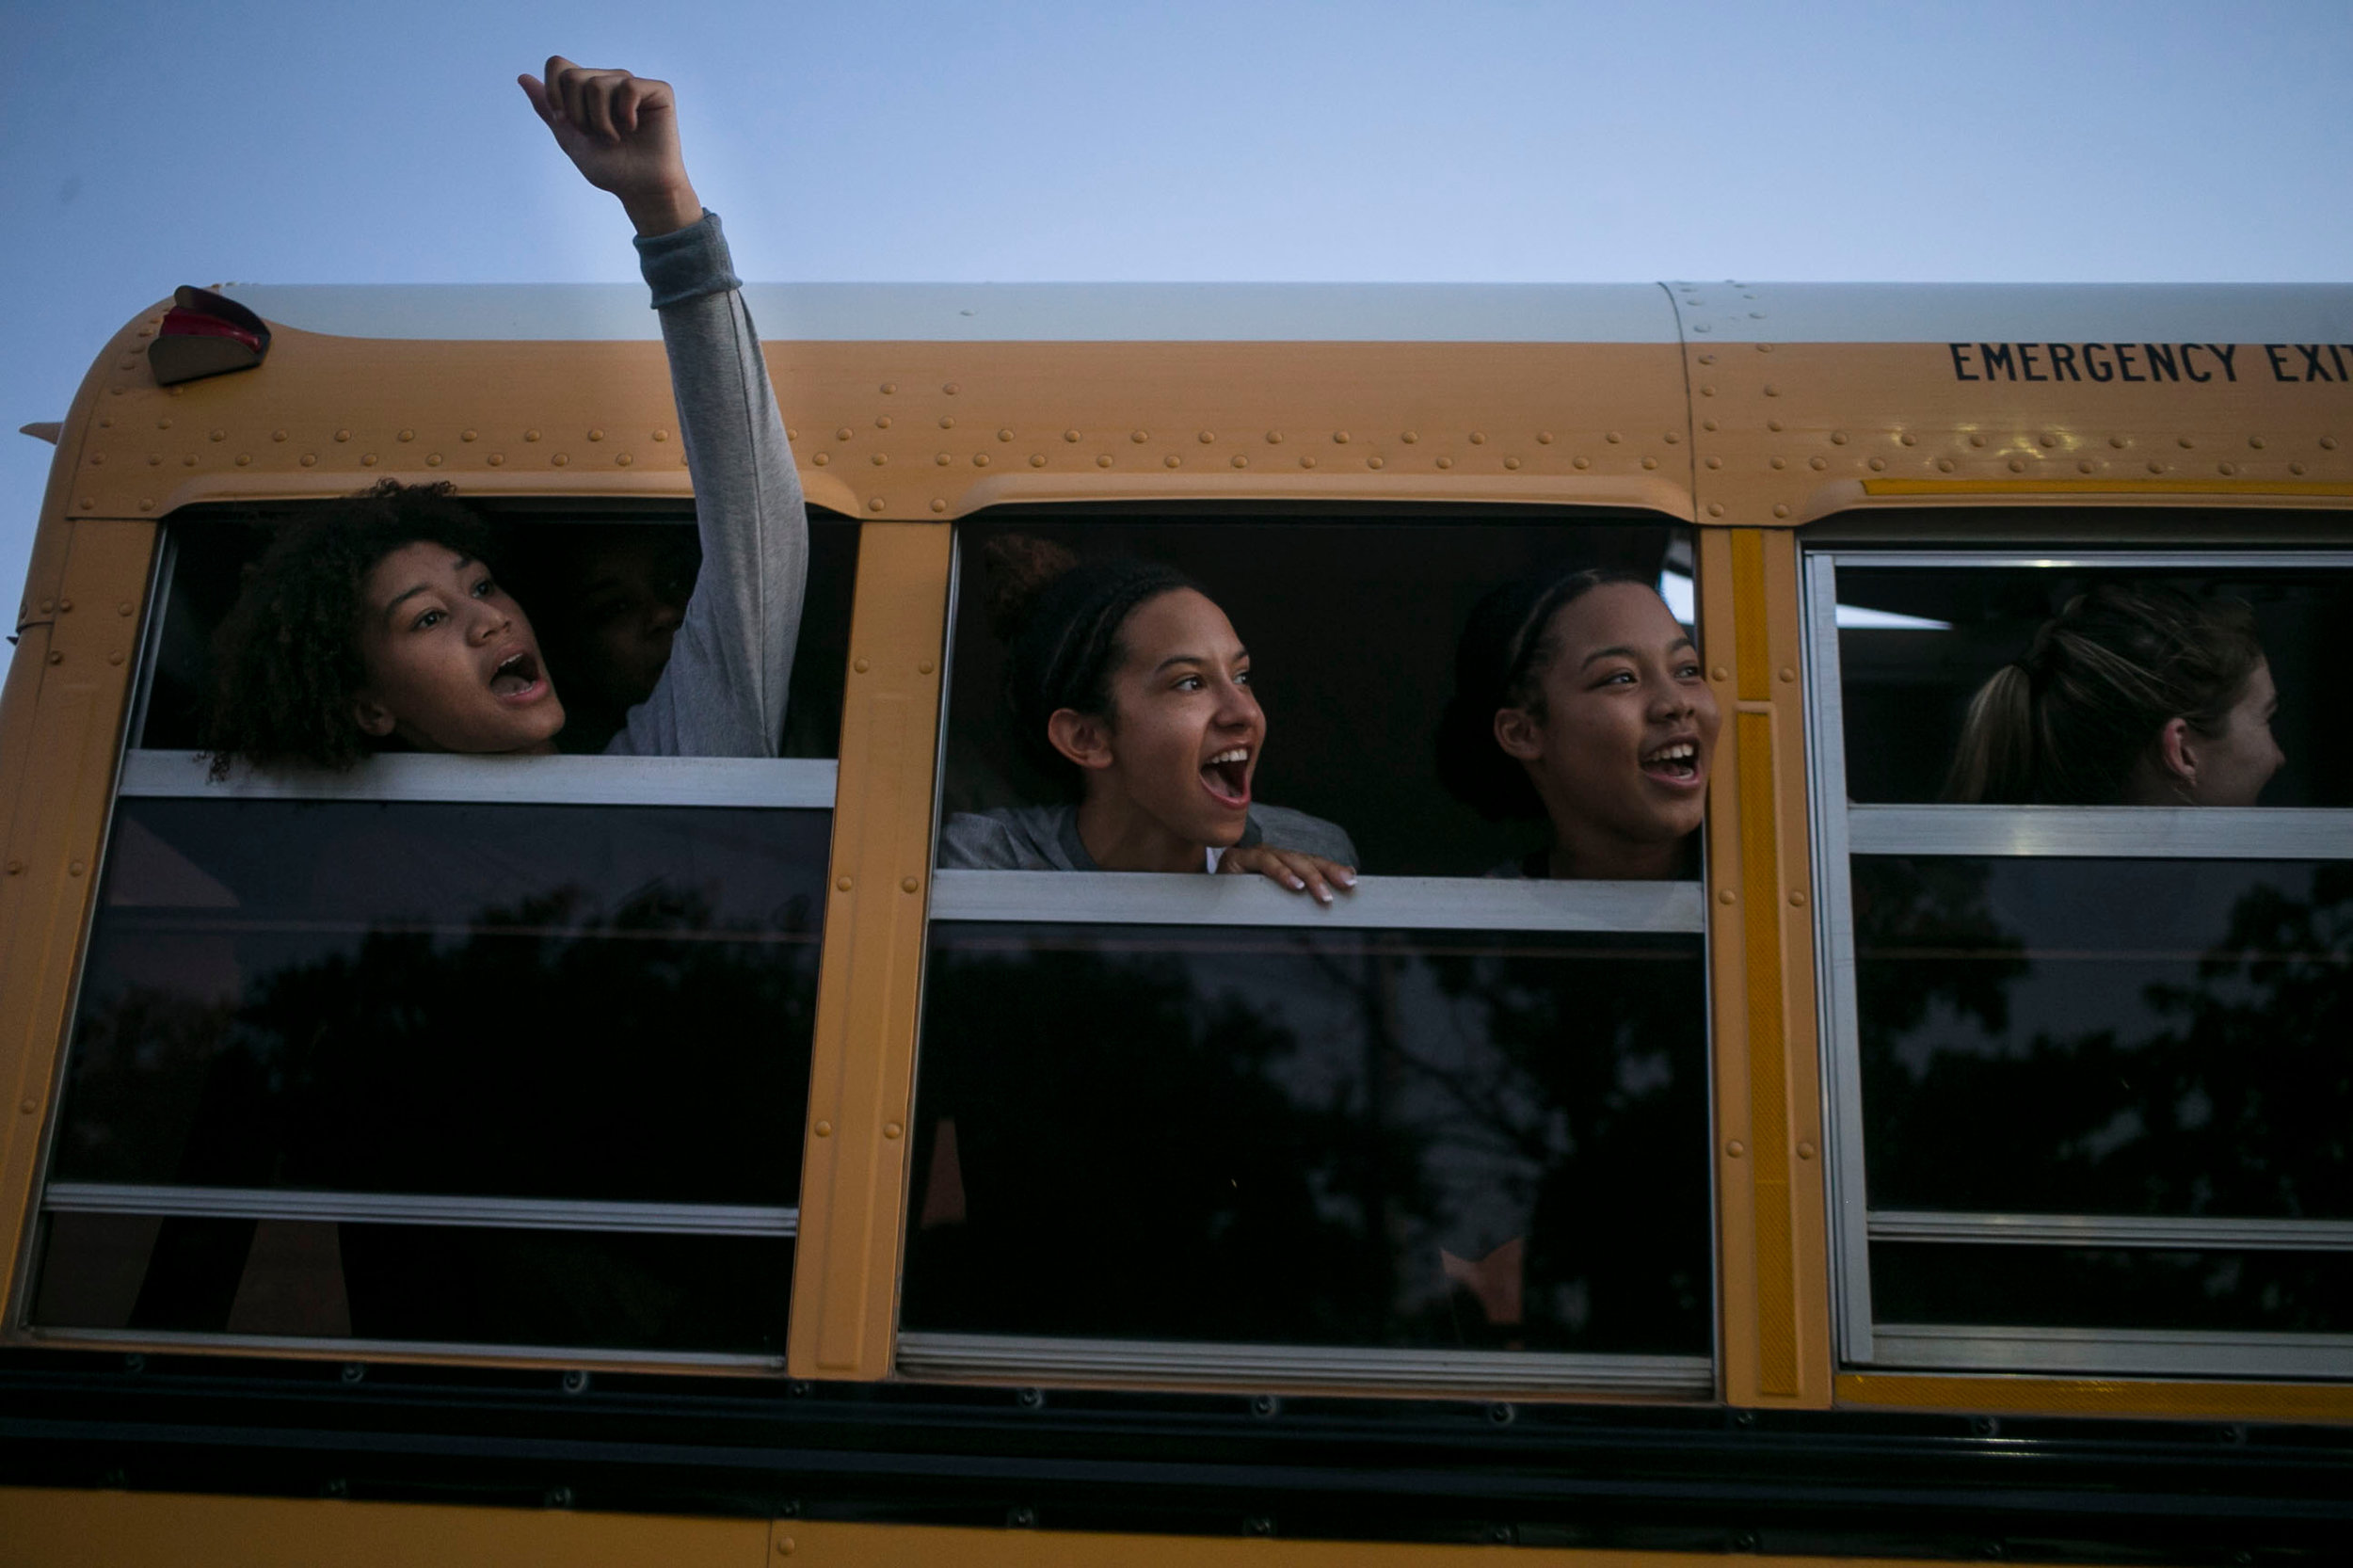 Ayanna Jackson, 16, Ashley Chatham, 16, and Jevani Hanspard, 16, cheer for their coach Monica Gonzales as she walks to the bus after the first Harlan Varsity Volleyball win at Paul Taylor Fieldhouse. The team beat their opposition 3-0 and spirits flew high as they began their seaon together.